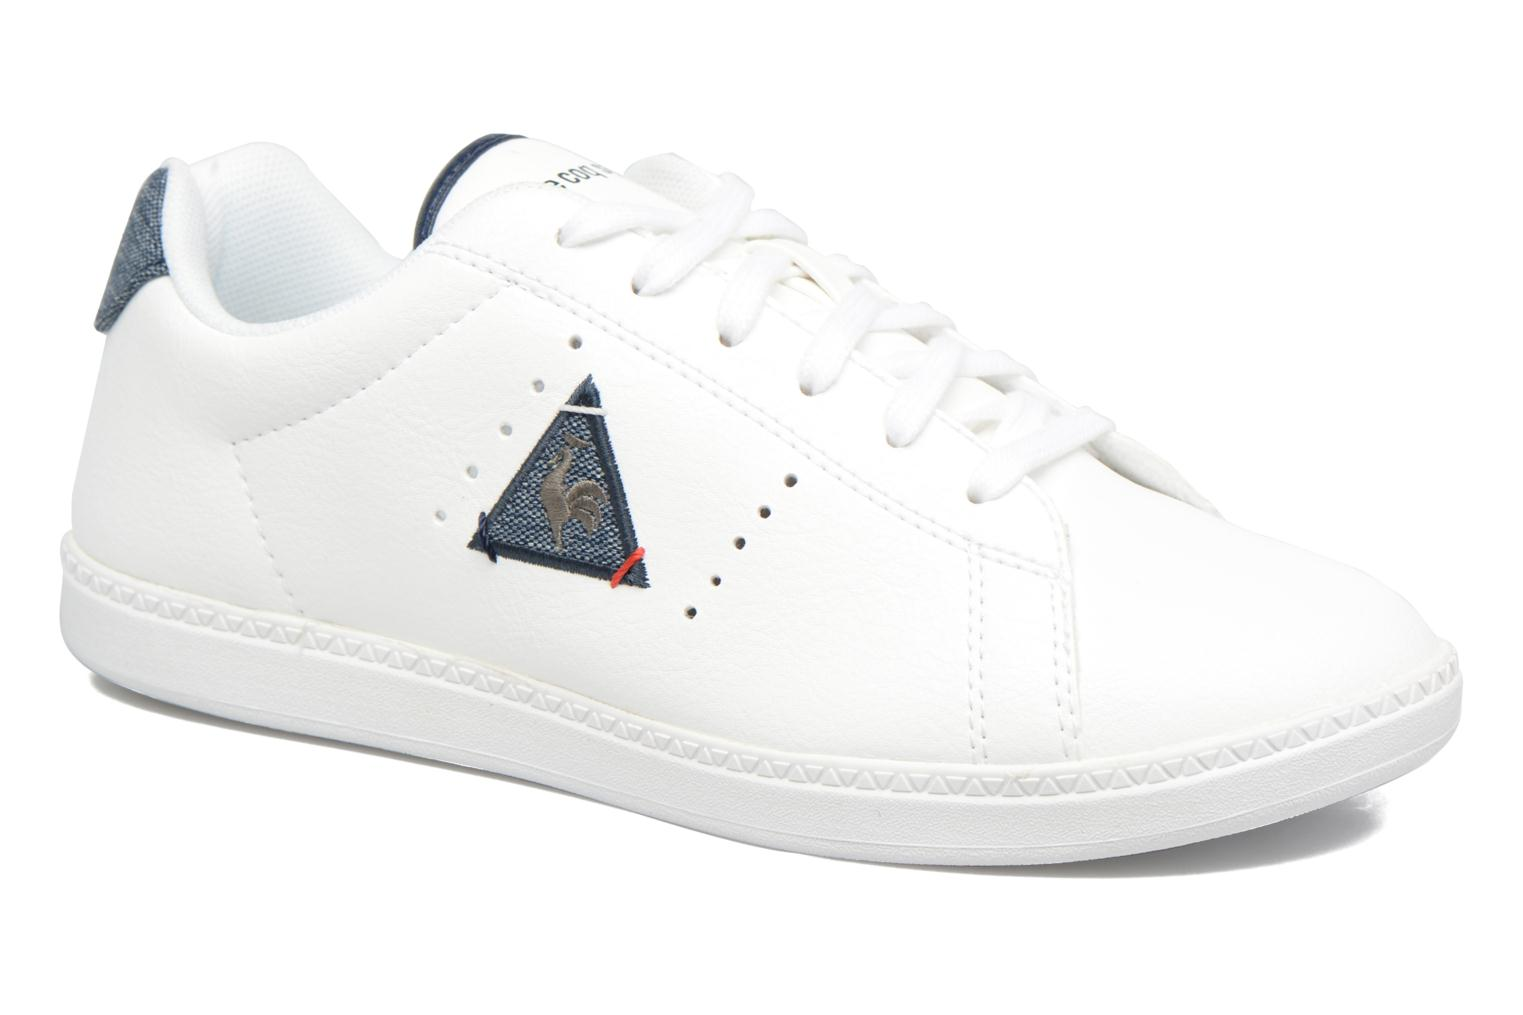 Courtone Gs Optical White/Dress Blue